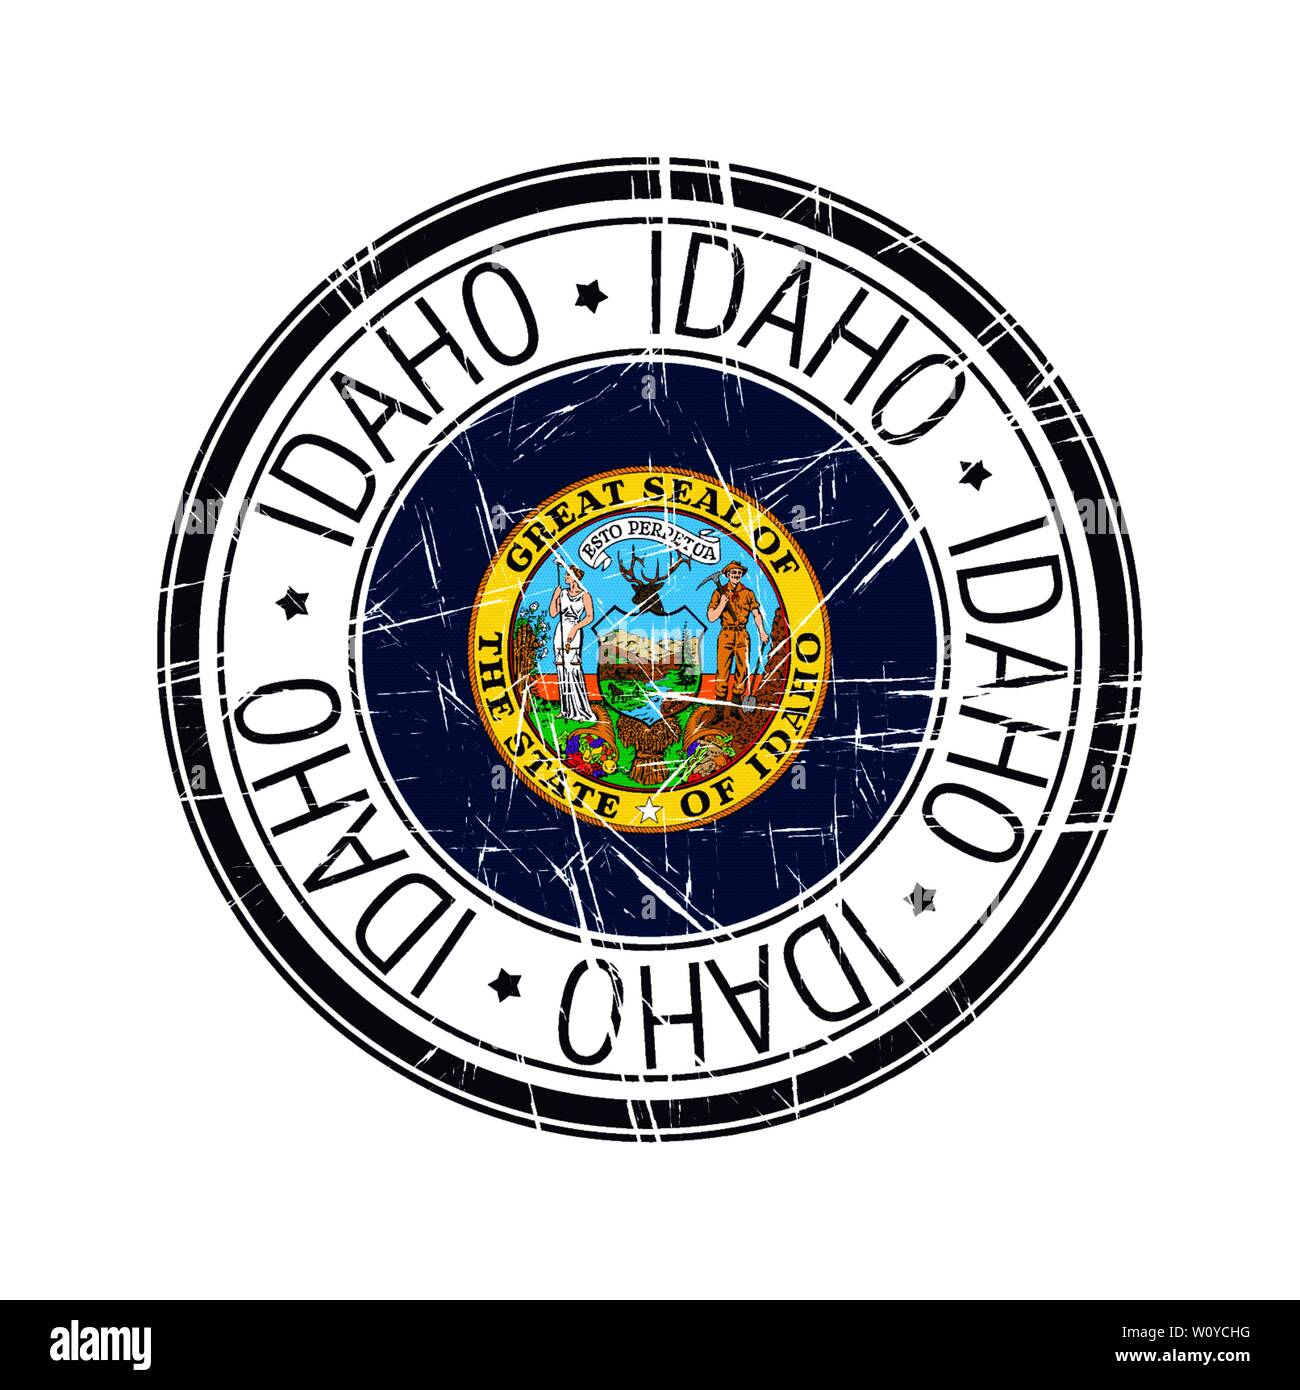 Great state of Idaho postal rubber stamp, vector object over white background - Stock Vector